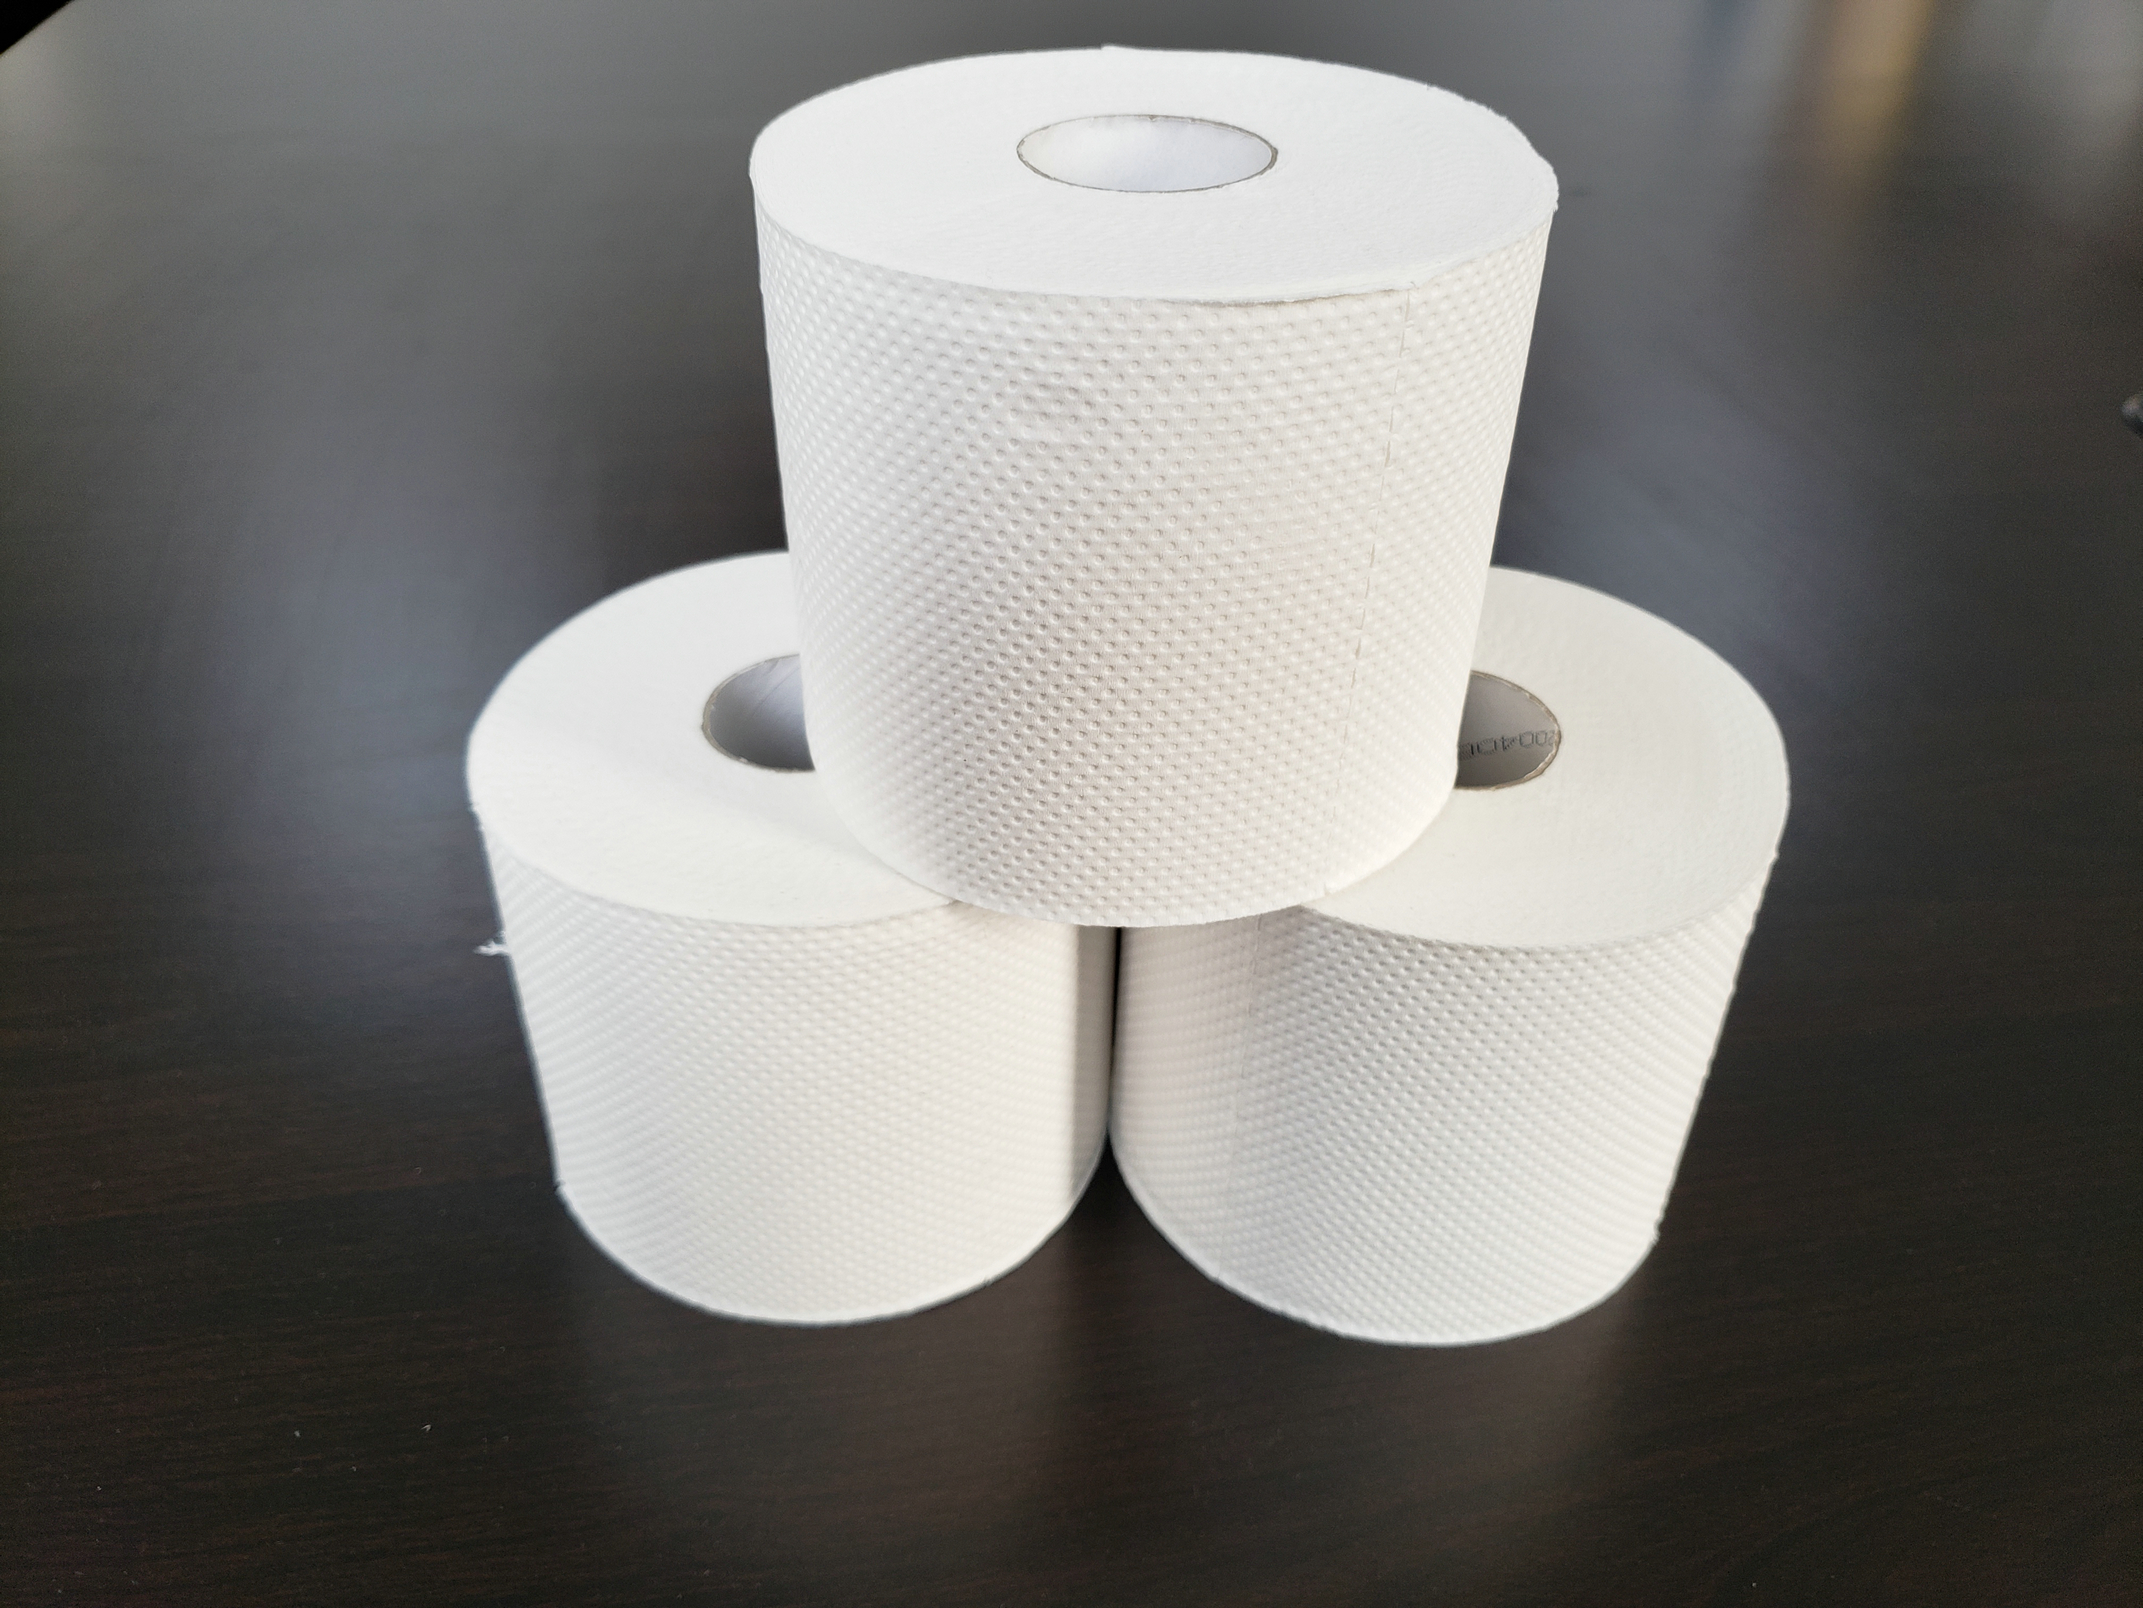 Soft Comfortable and virgin pulp OEM 1-6 Ply Toilet Tissue/Toilet Paper